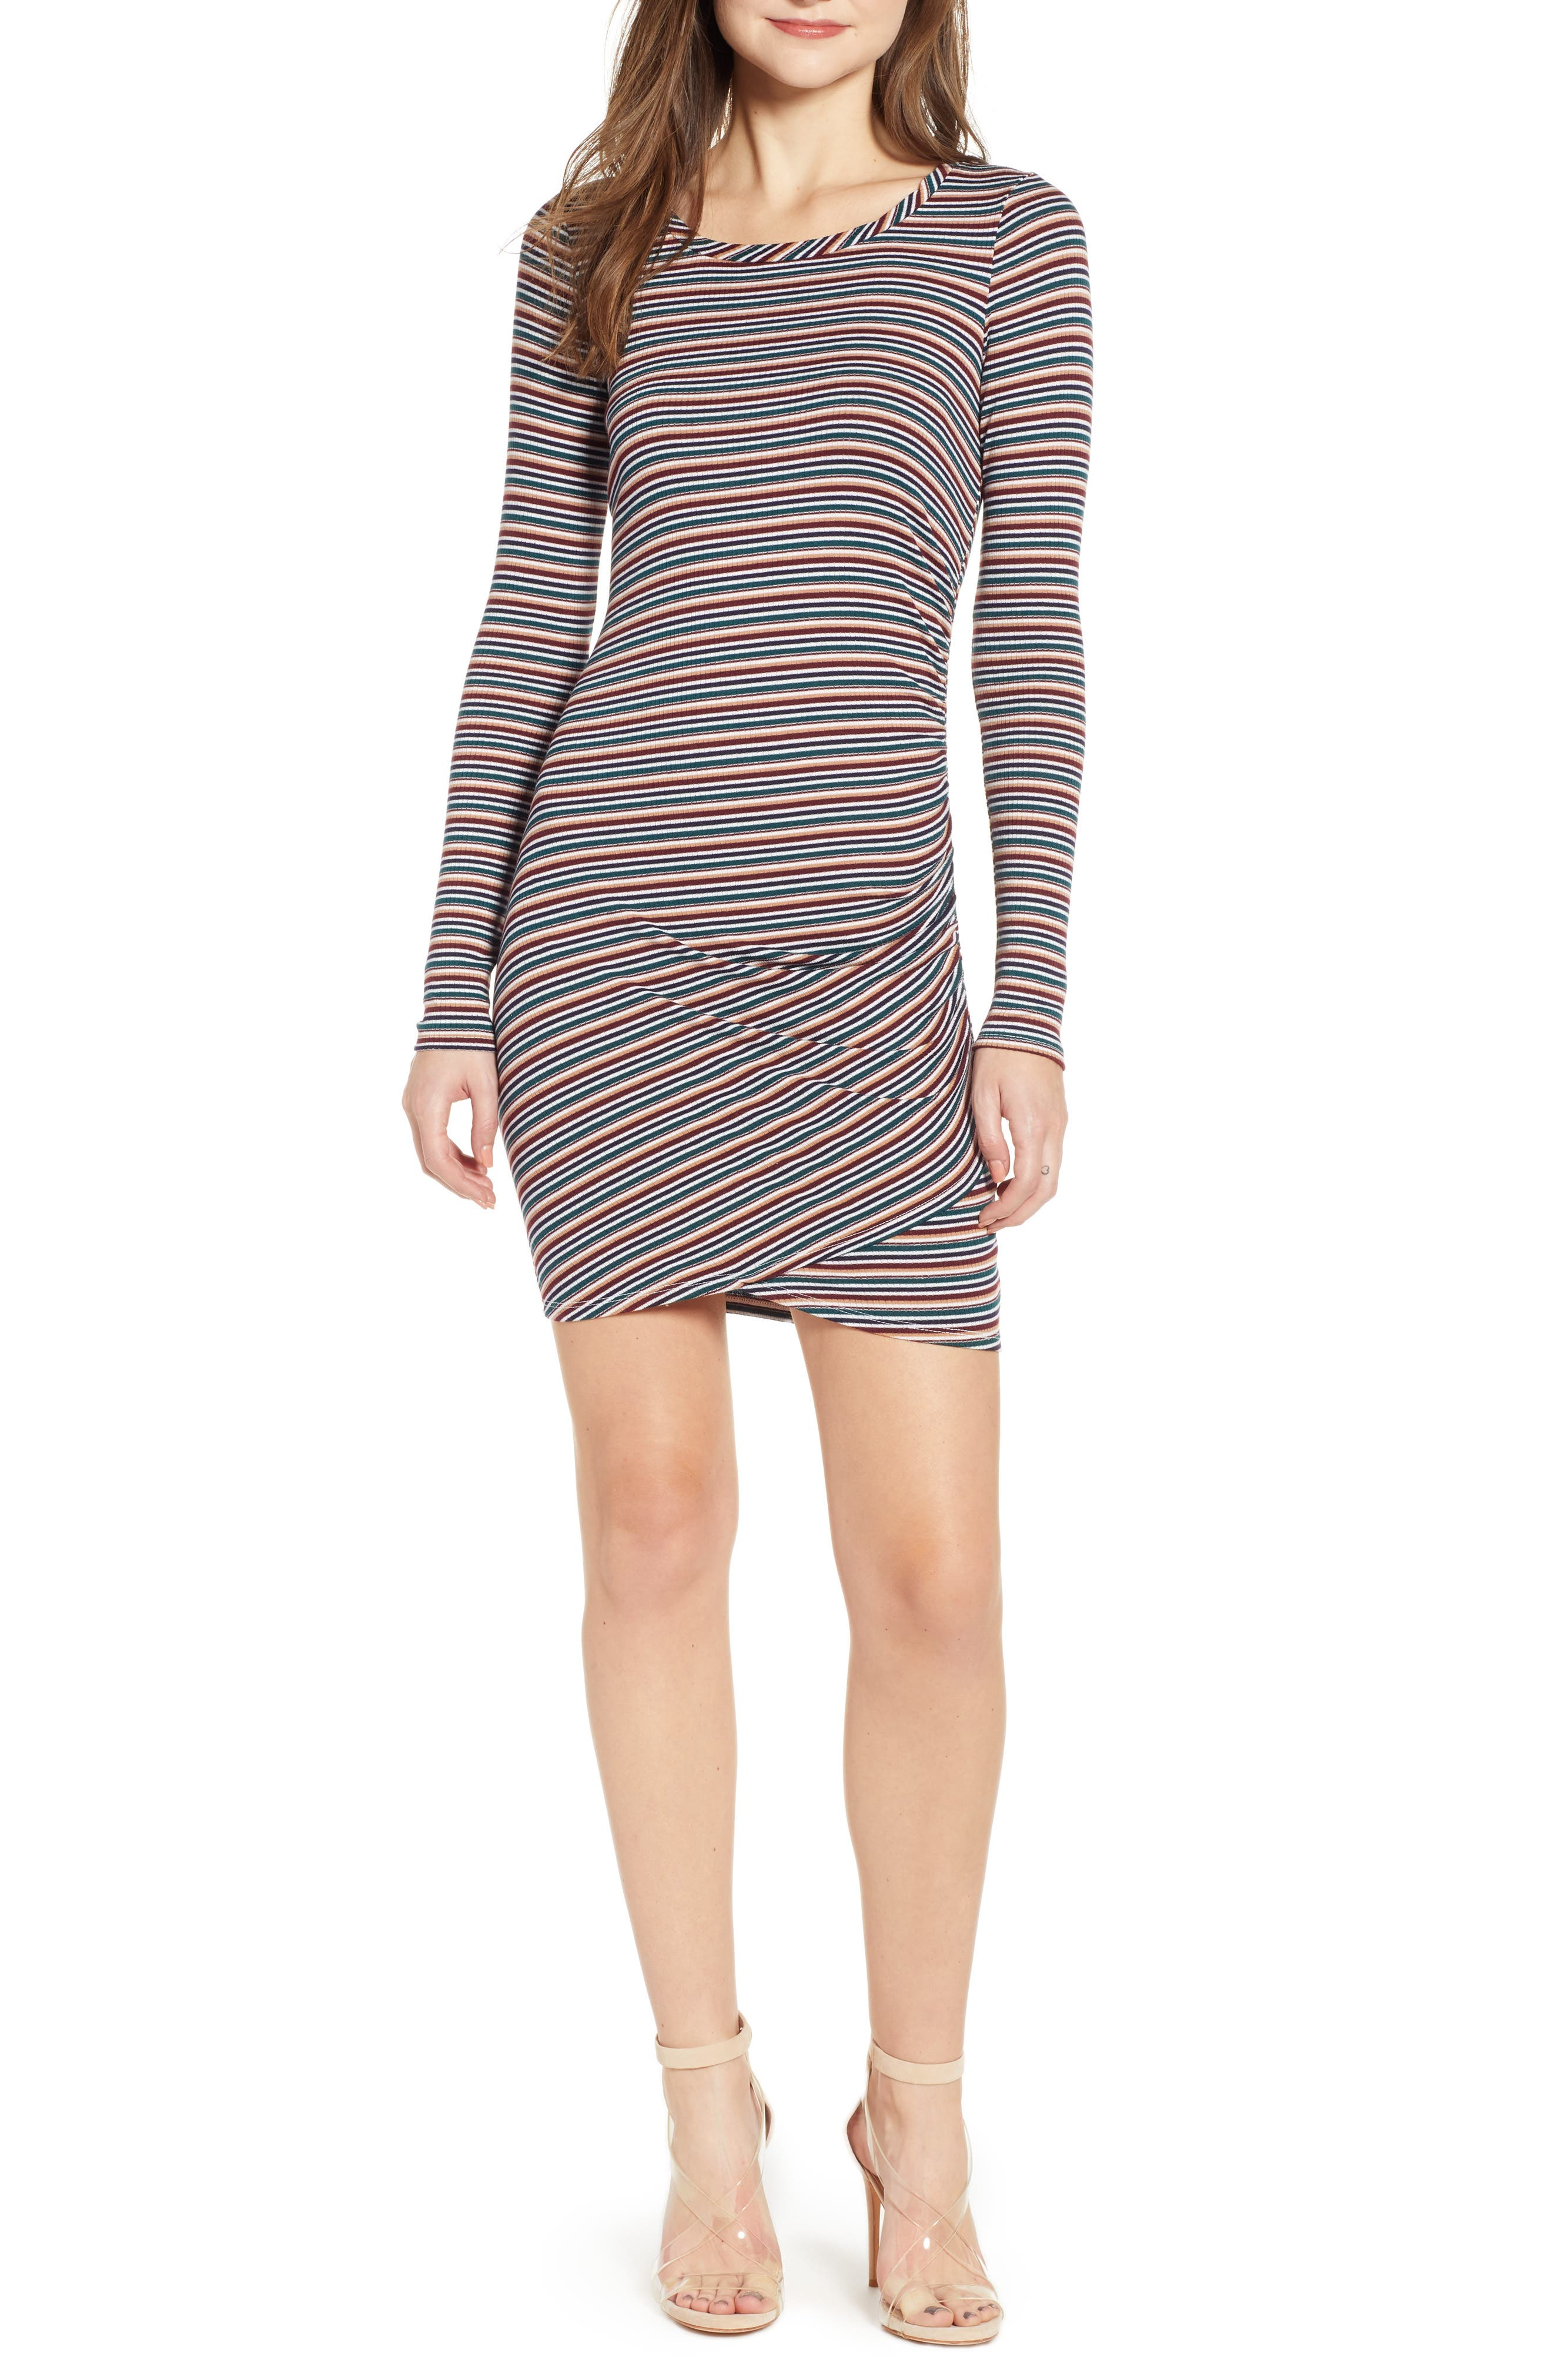 LOVE, FIRE Ruched Stripe Minidress, Main, color, 020